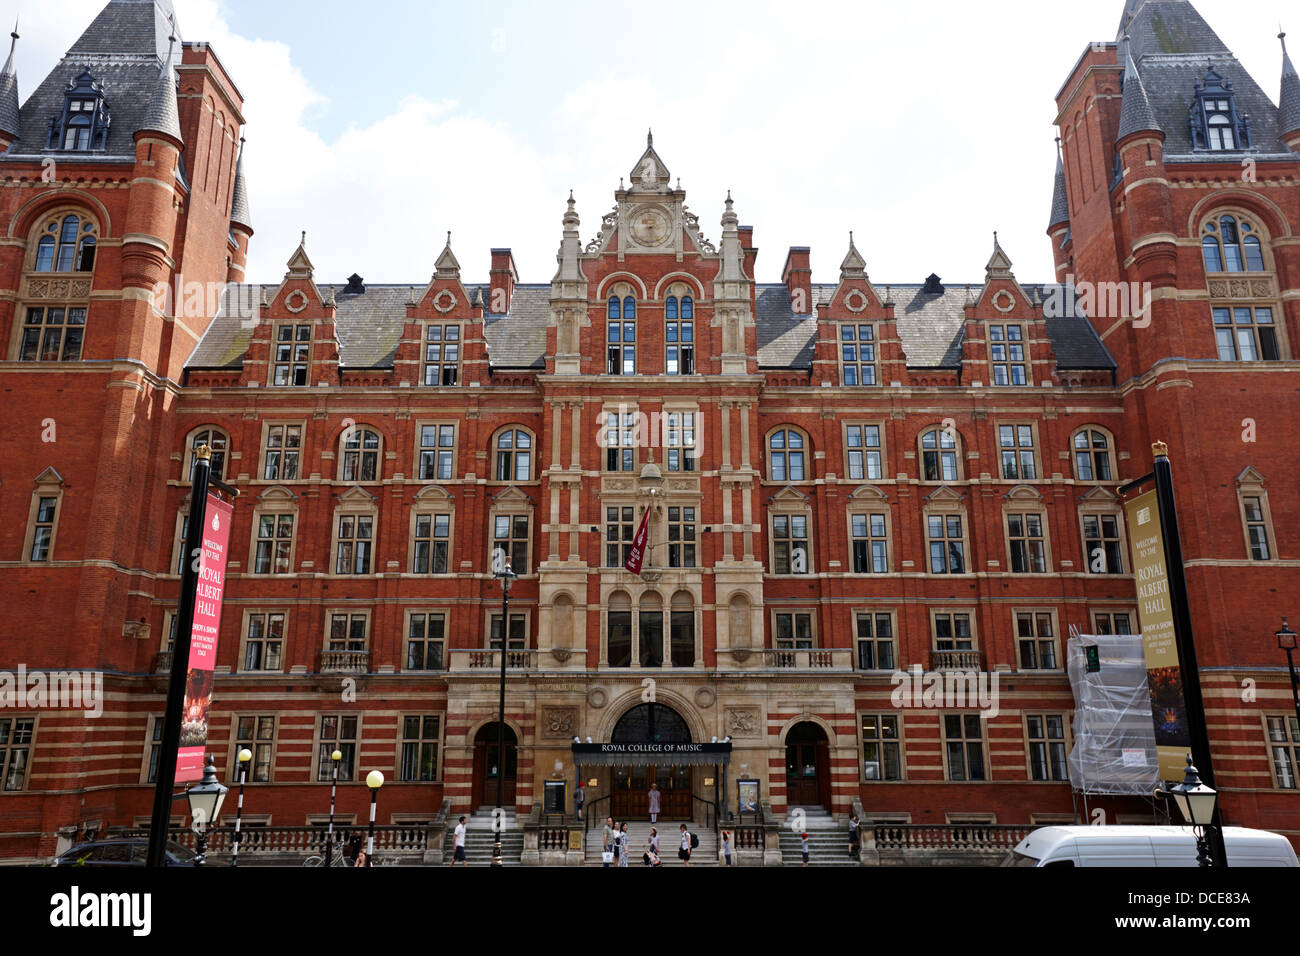 the royal college of music London England UK Stock Photo